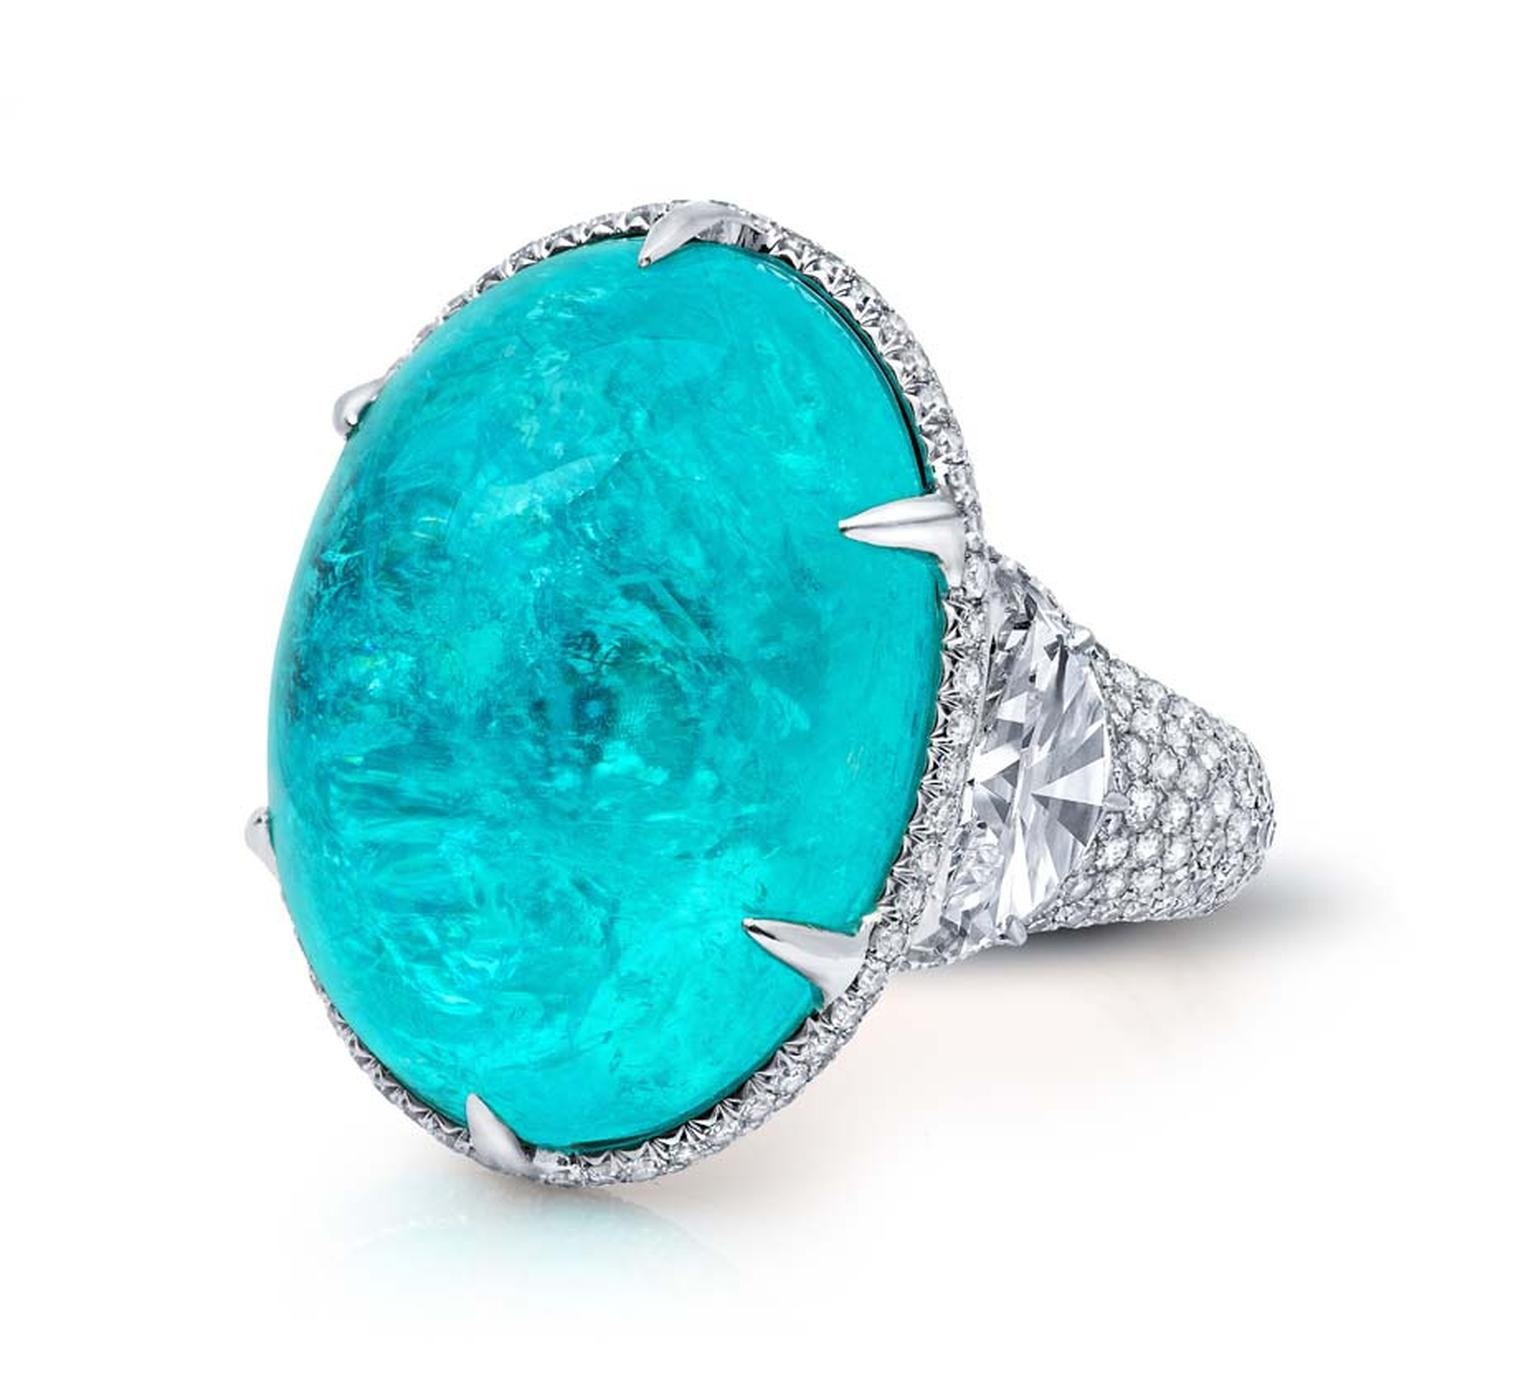 Beverly Hills-based Martin Katz shows off his uncompromising craftsmanship in the new Paraiba collection, which showcases vivid turquoise Paraiba tourmalines of perfect clarity that have been collected by Katz over the years.